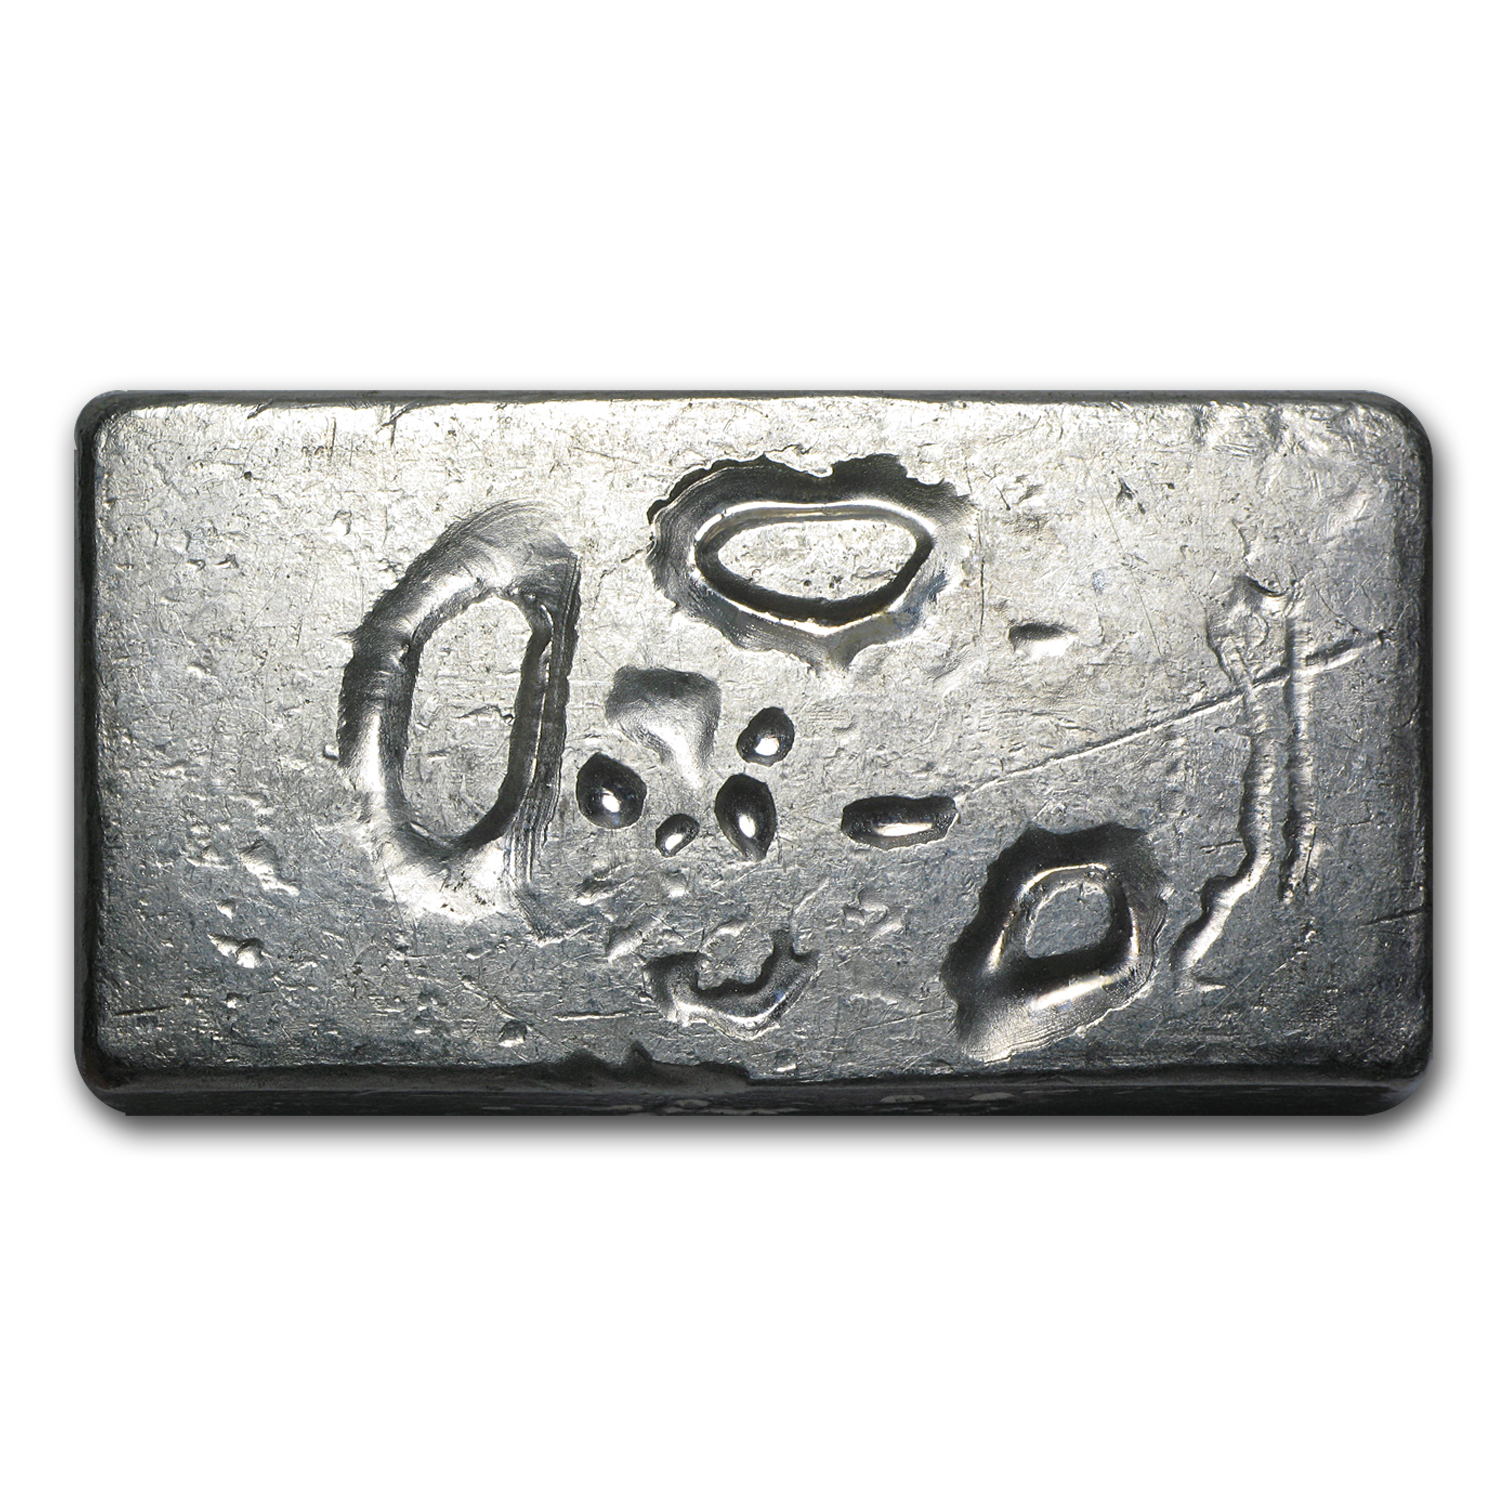 10 oz Silver Bar - Engelhard (Wide, Poured, Bull Logo)